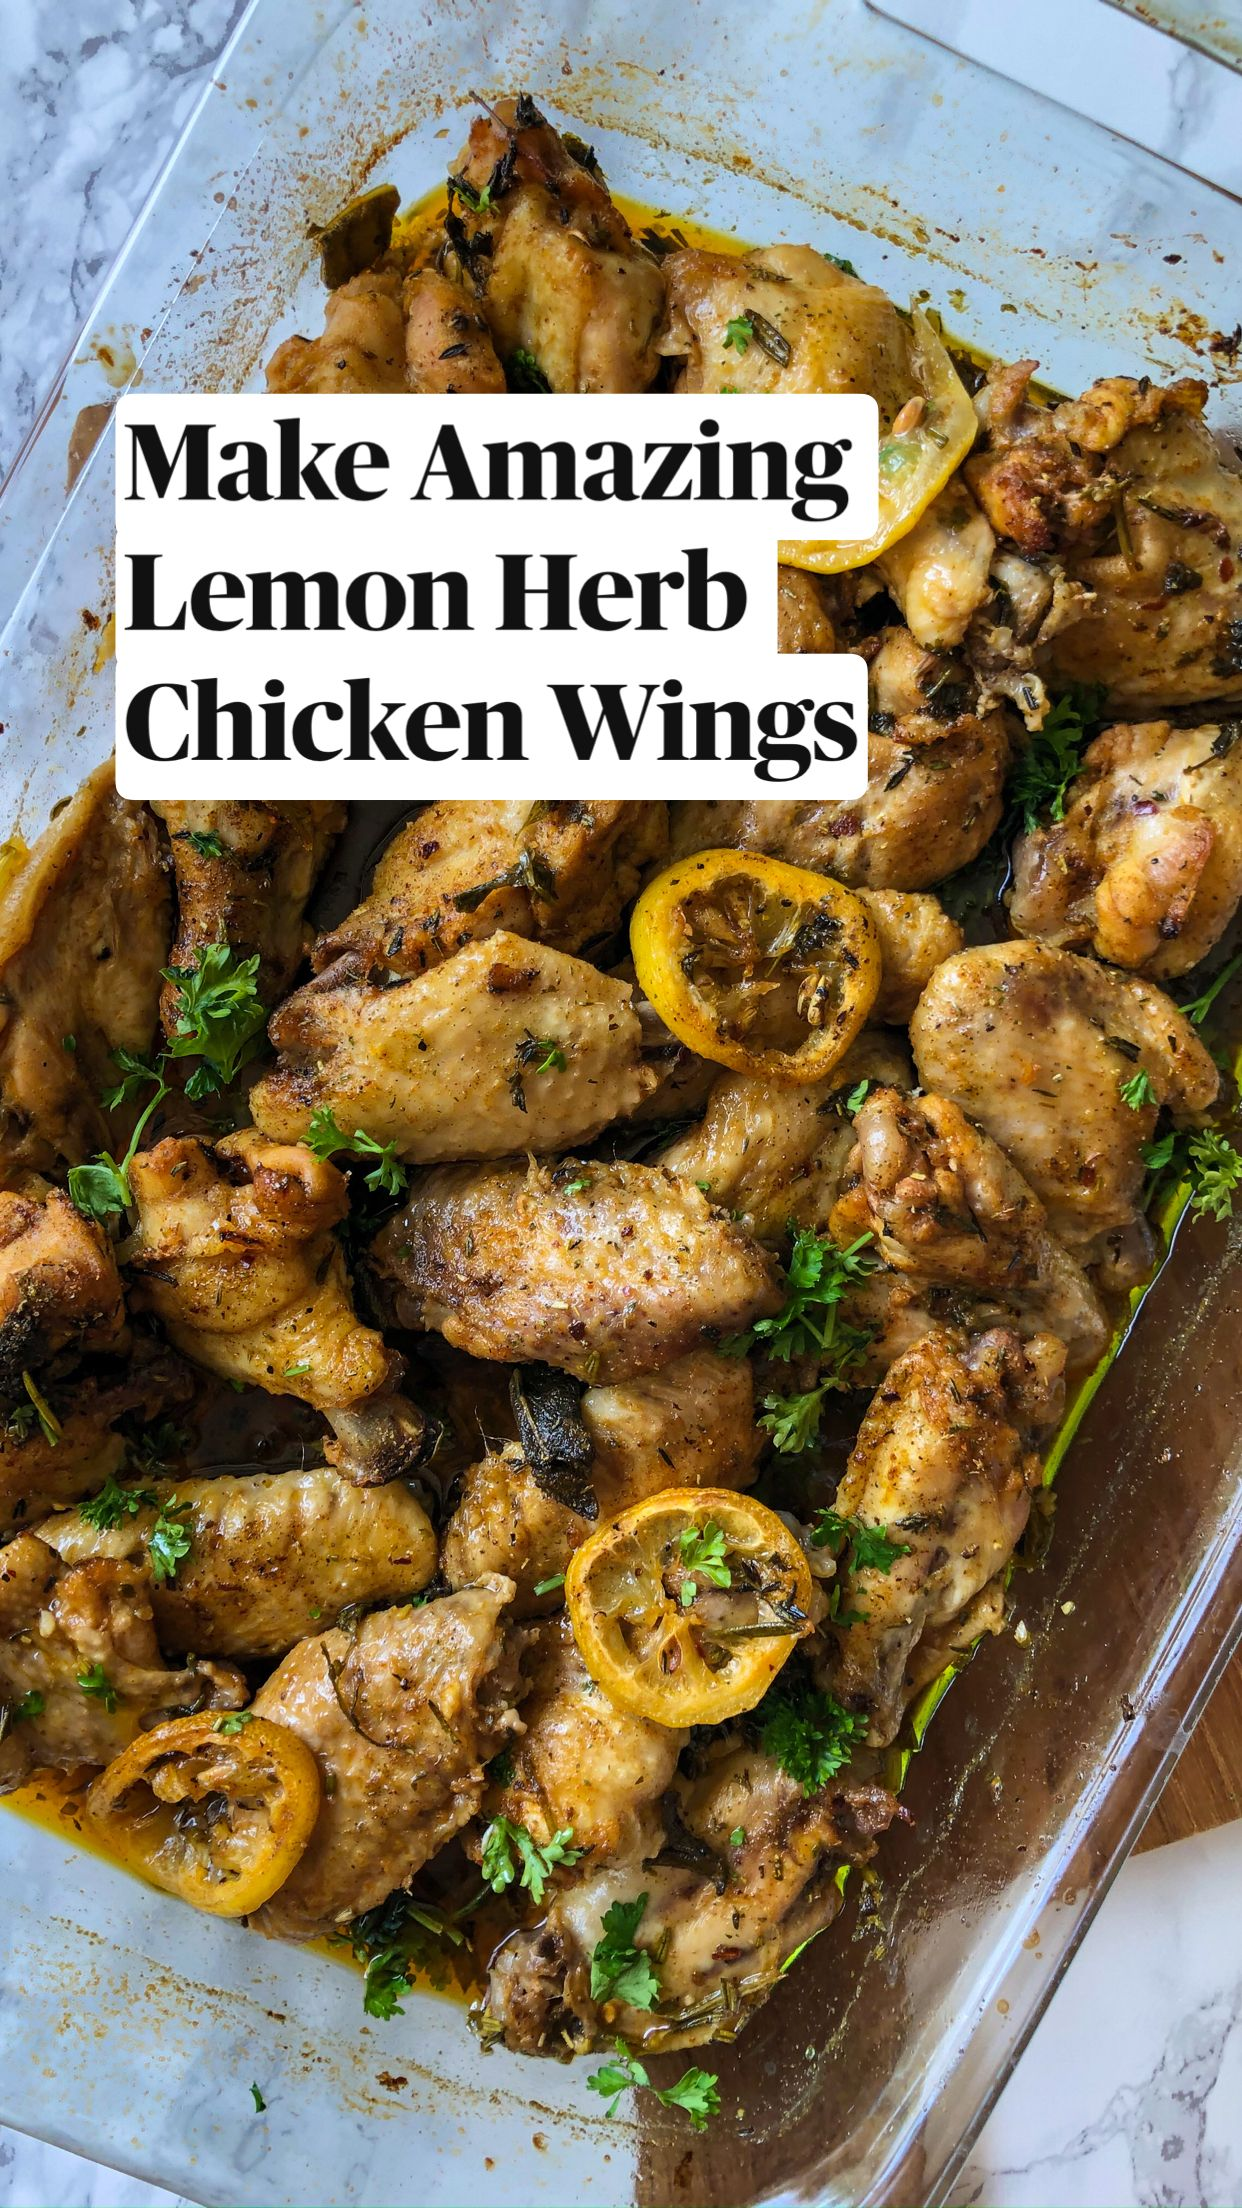 Make Amazing Lemon Herb Chicken Wings